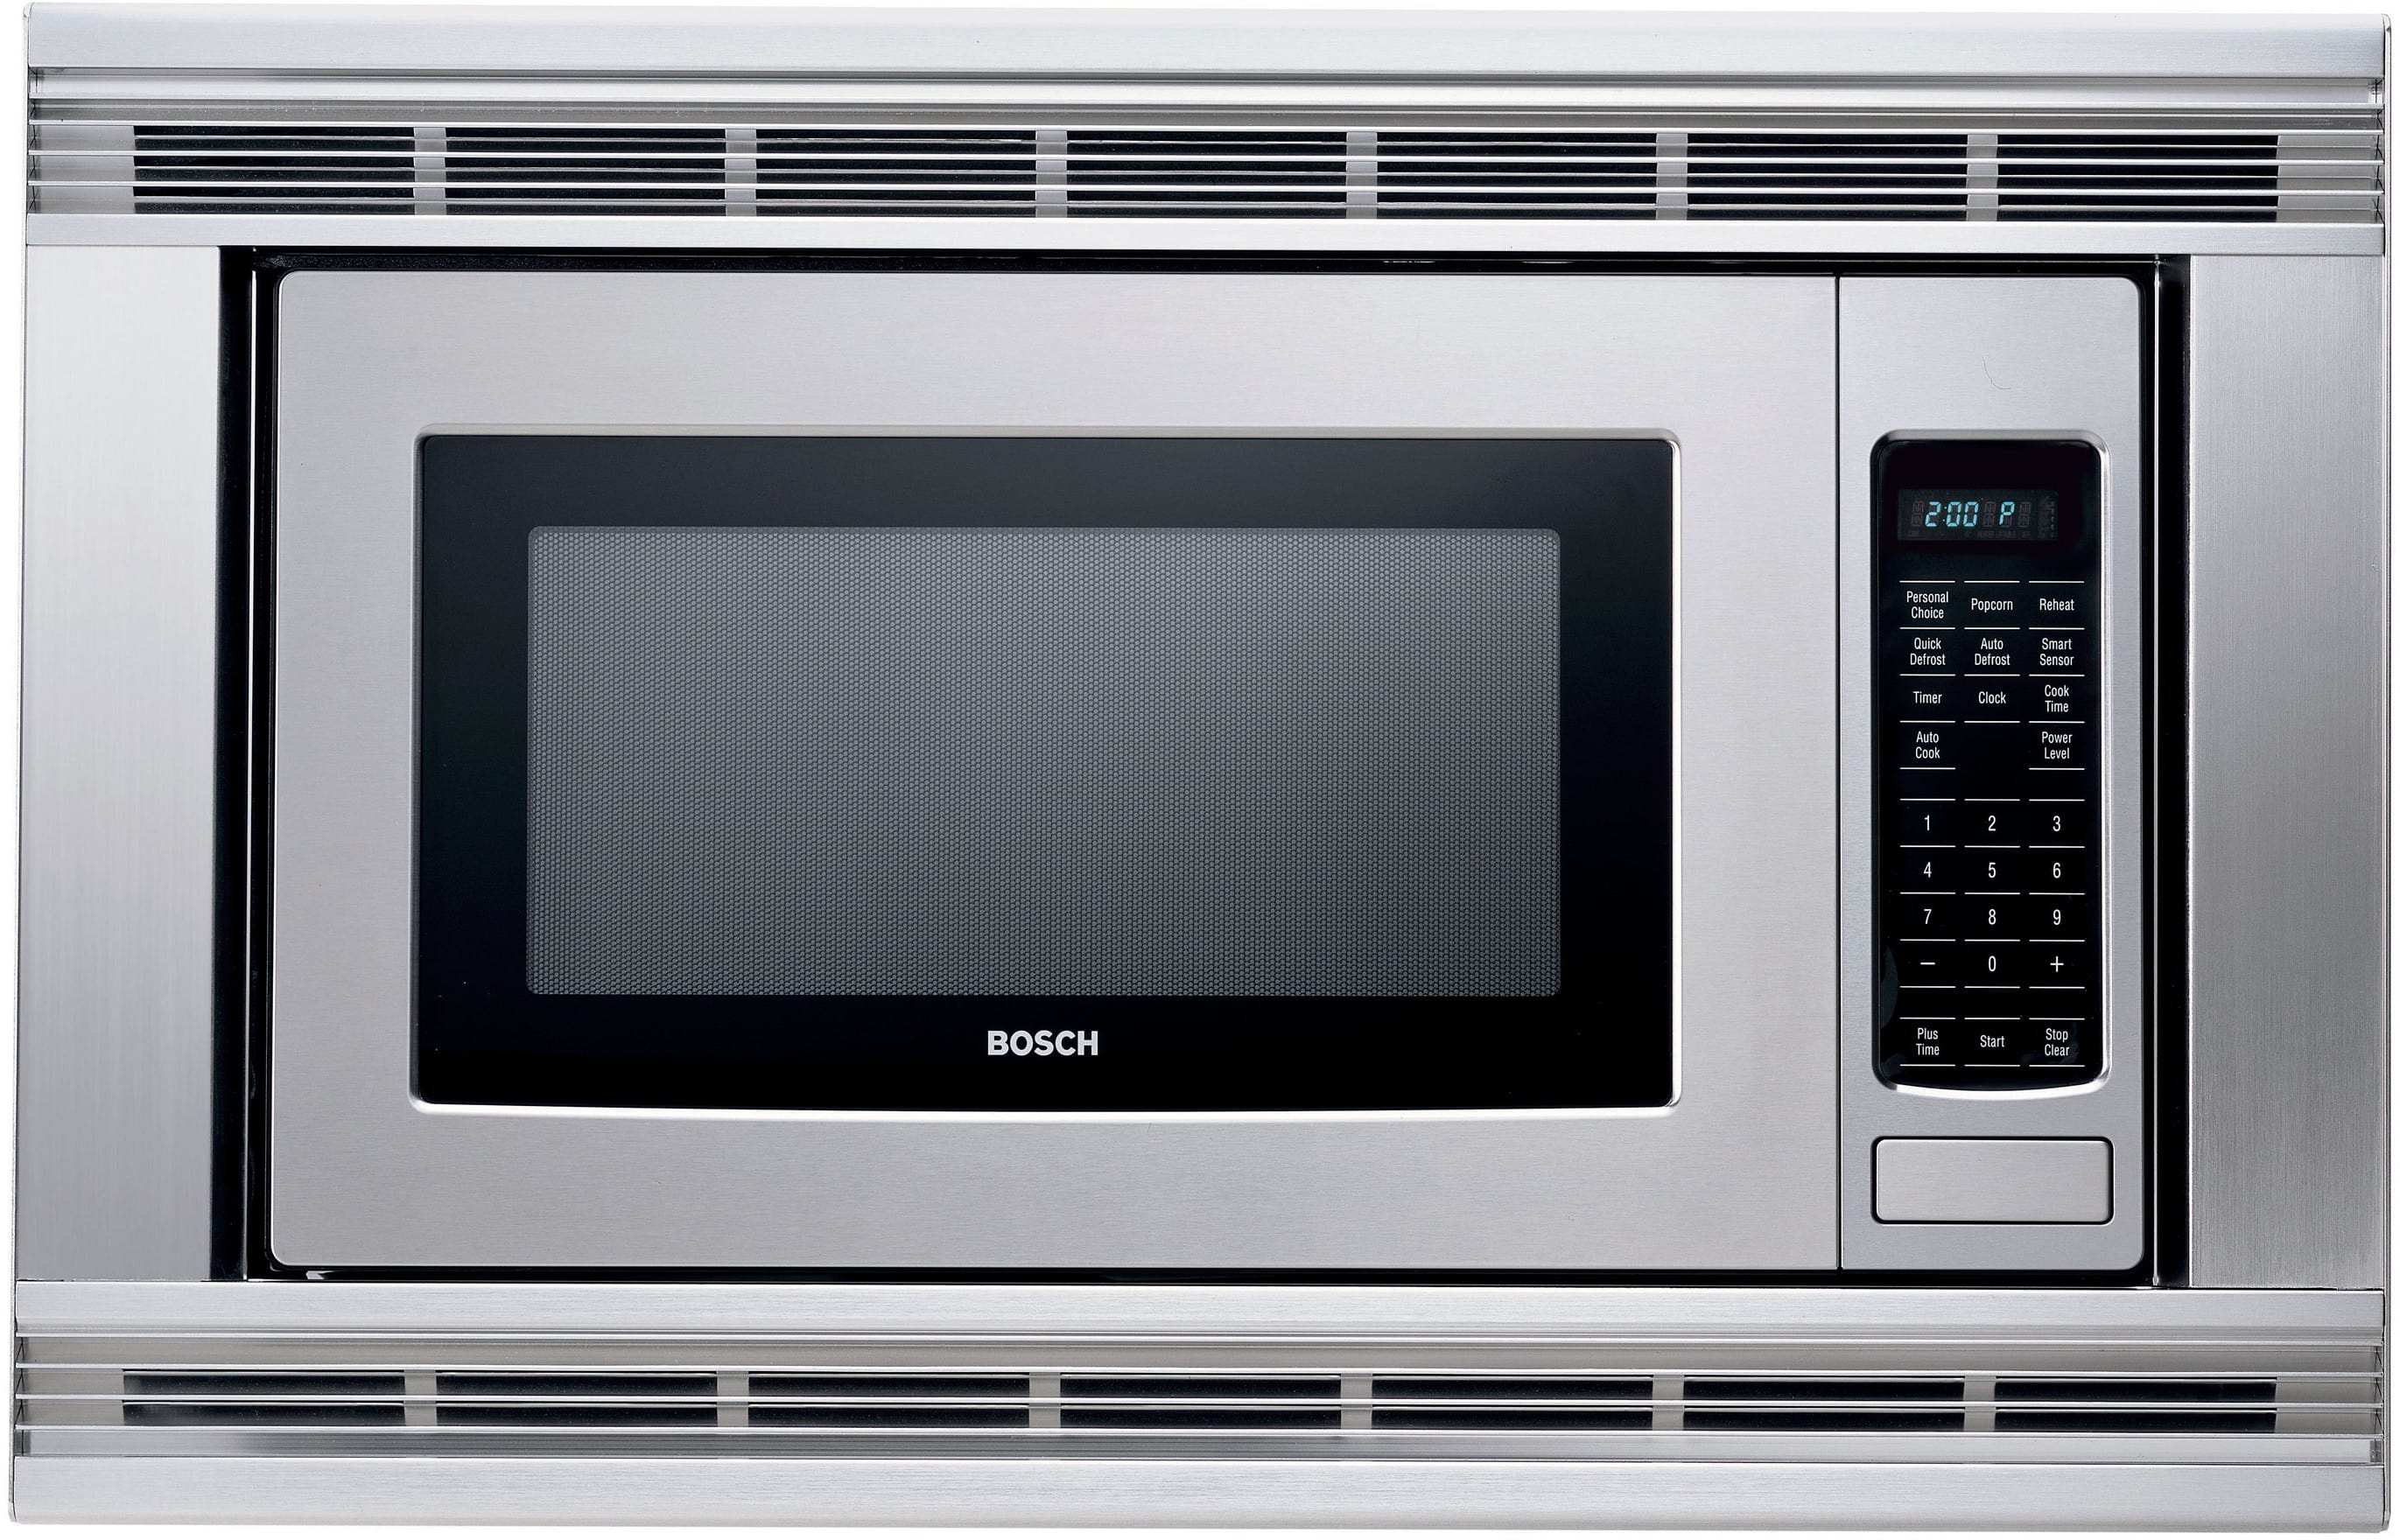 Bosch hmb405 2 1 cu ft built in microwave oven with for Microwave ovens built in with trim kit